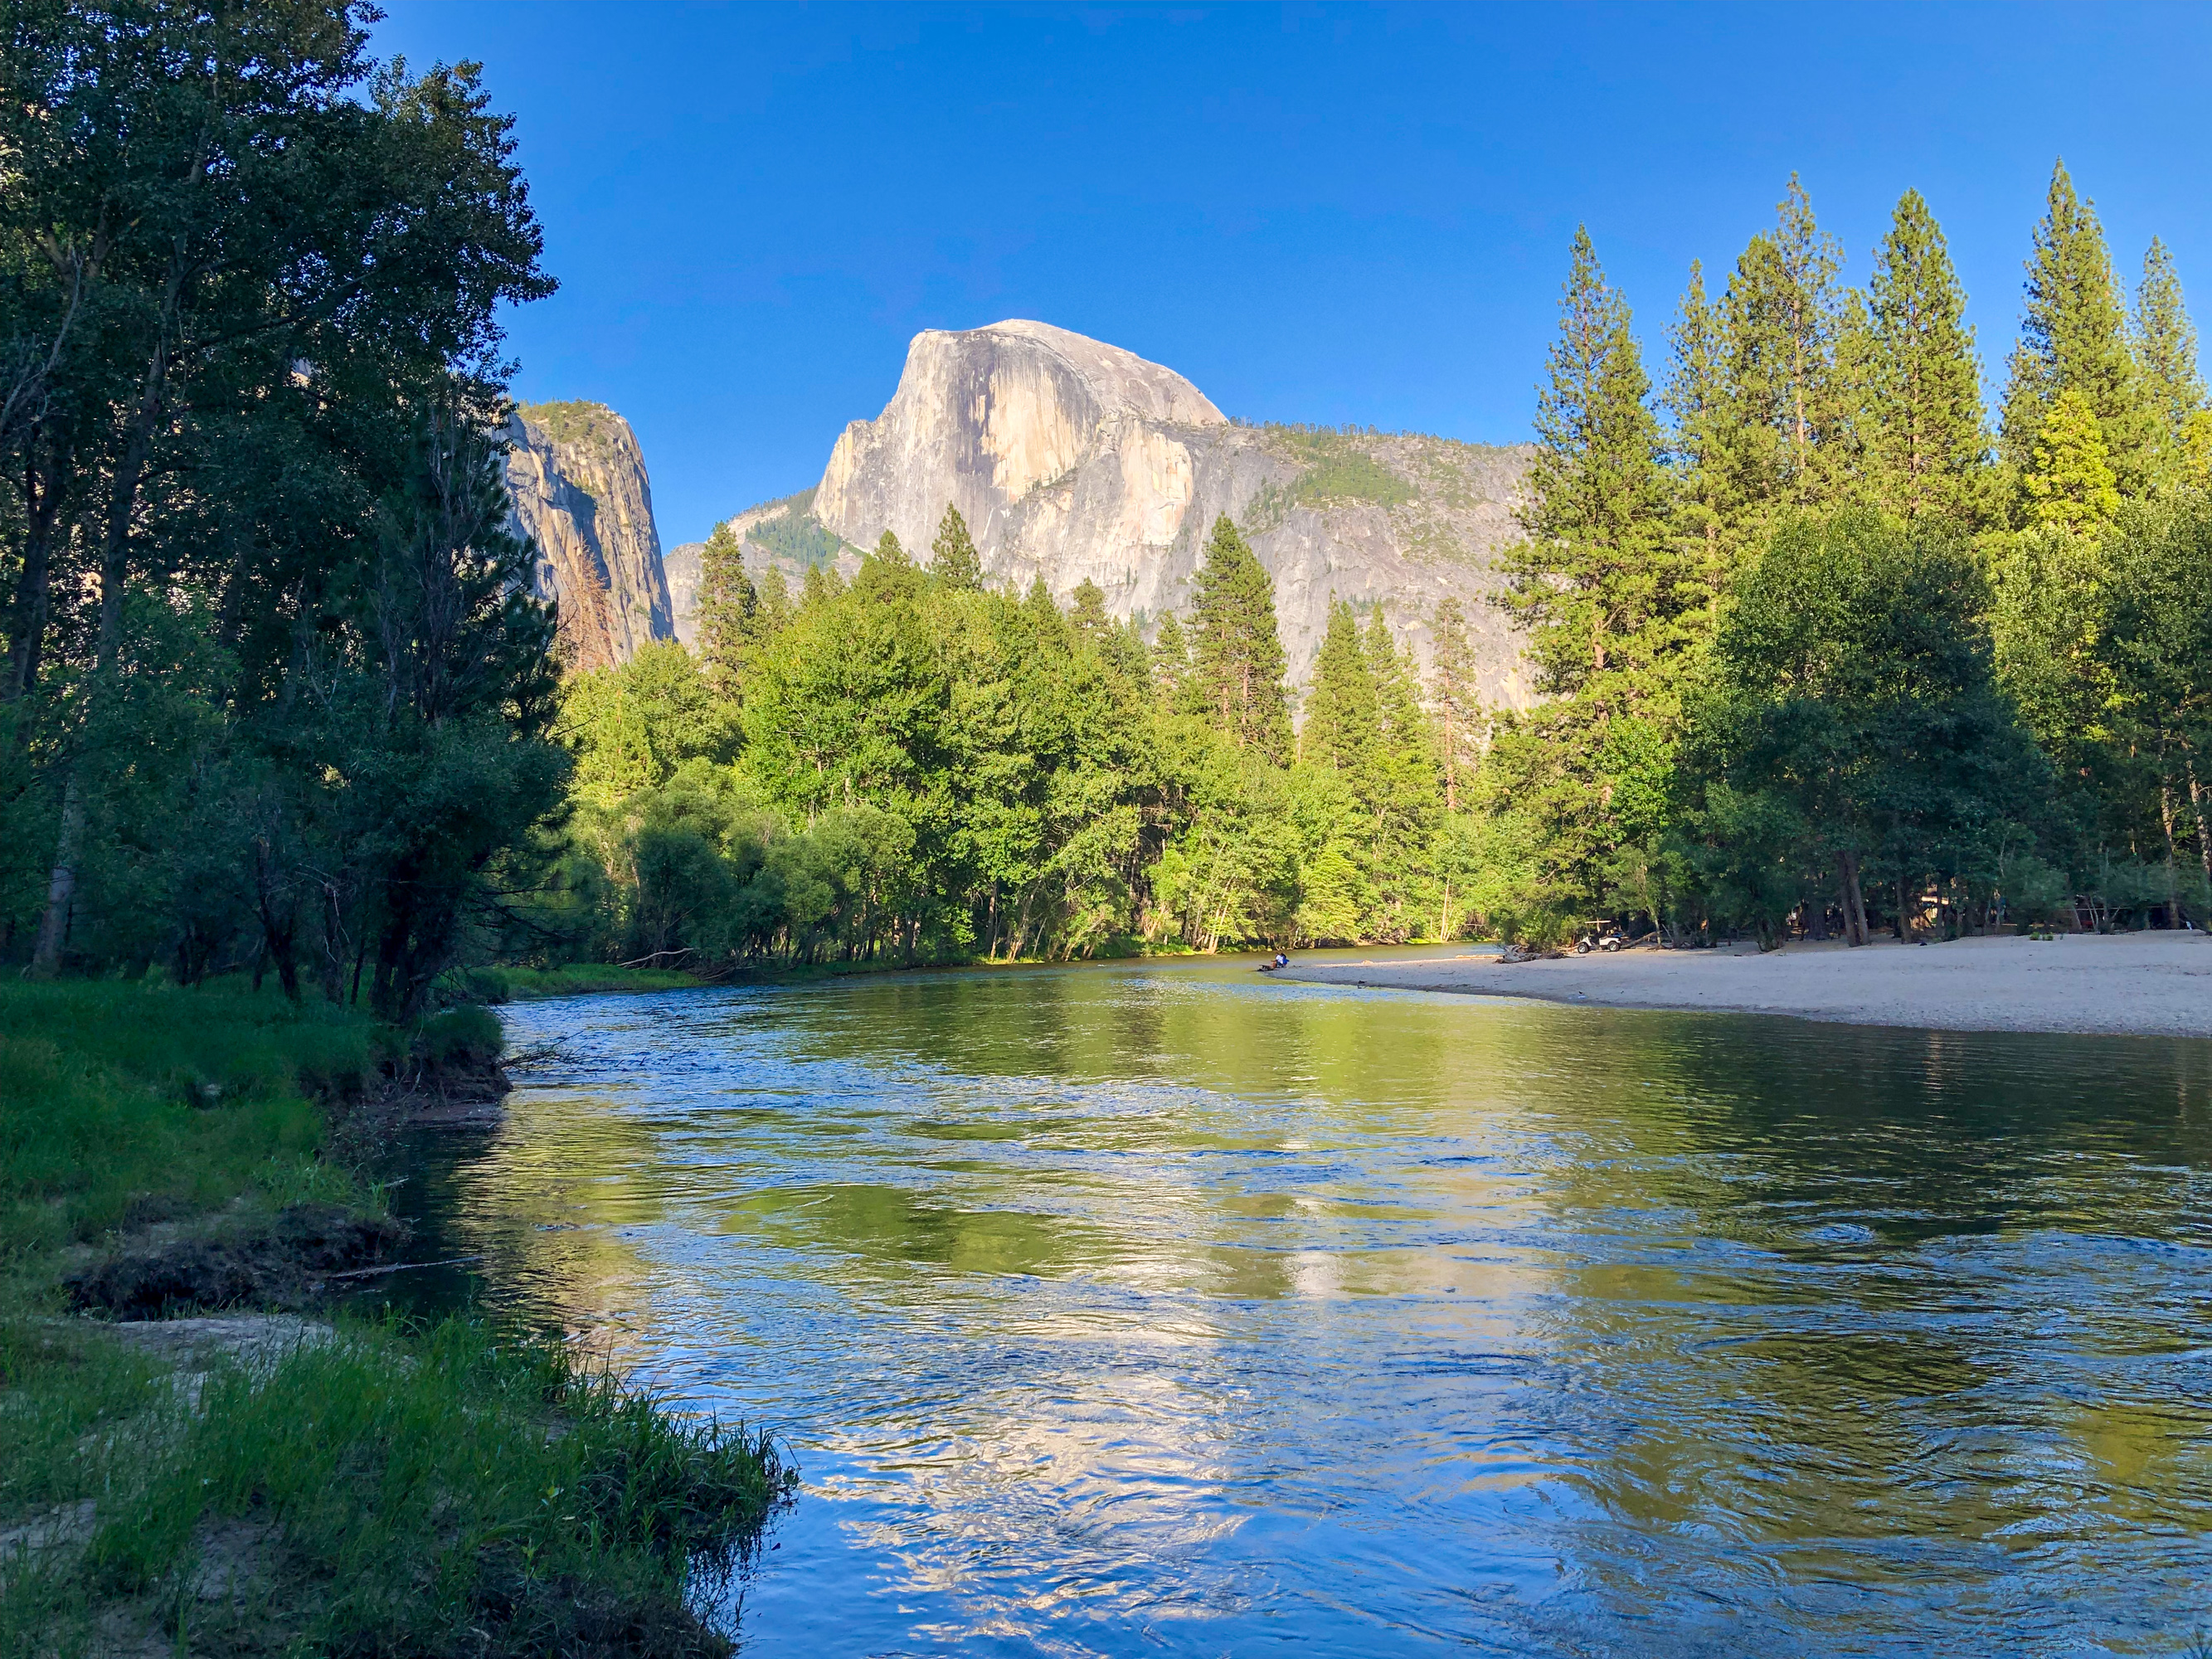 Sunshine illuminates Half Dome as seen from the Merced River in Yosemite Valley.